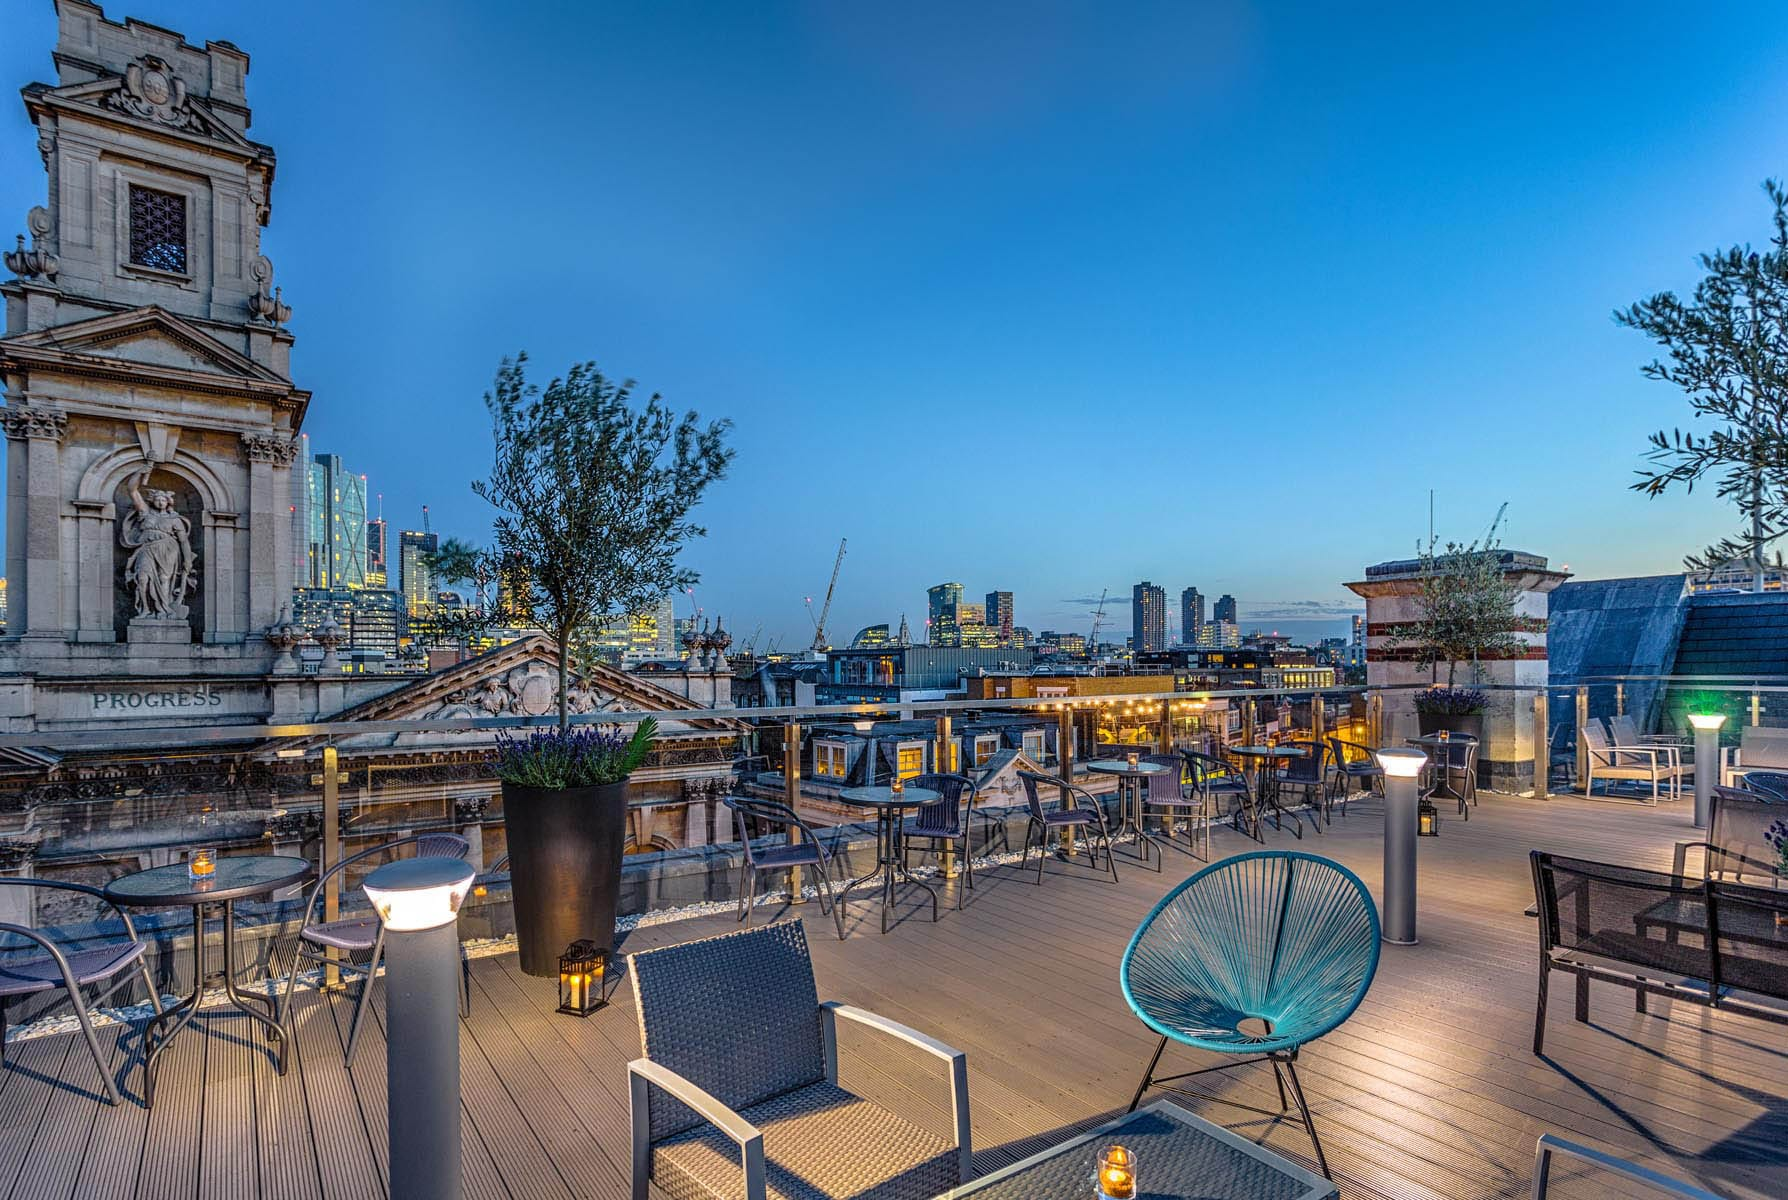 Rooftop bar in London with the city in the background